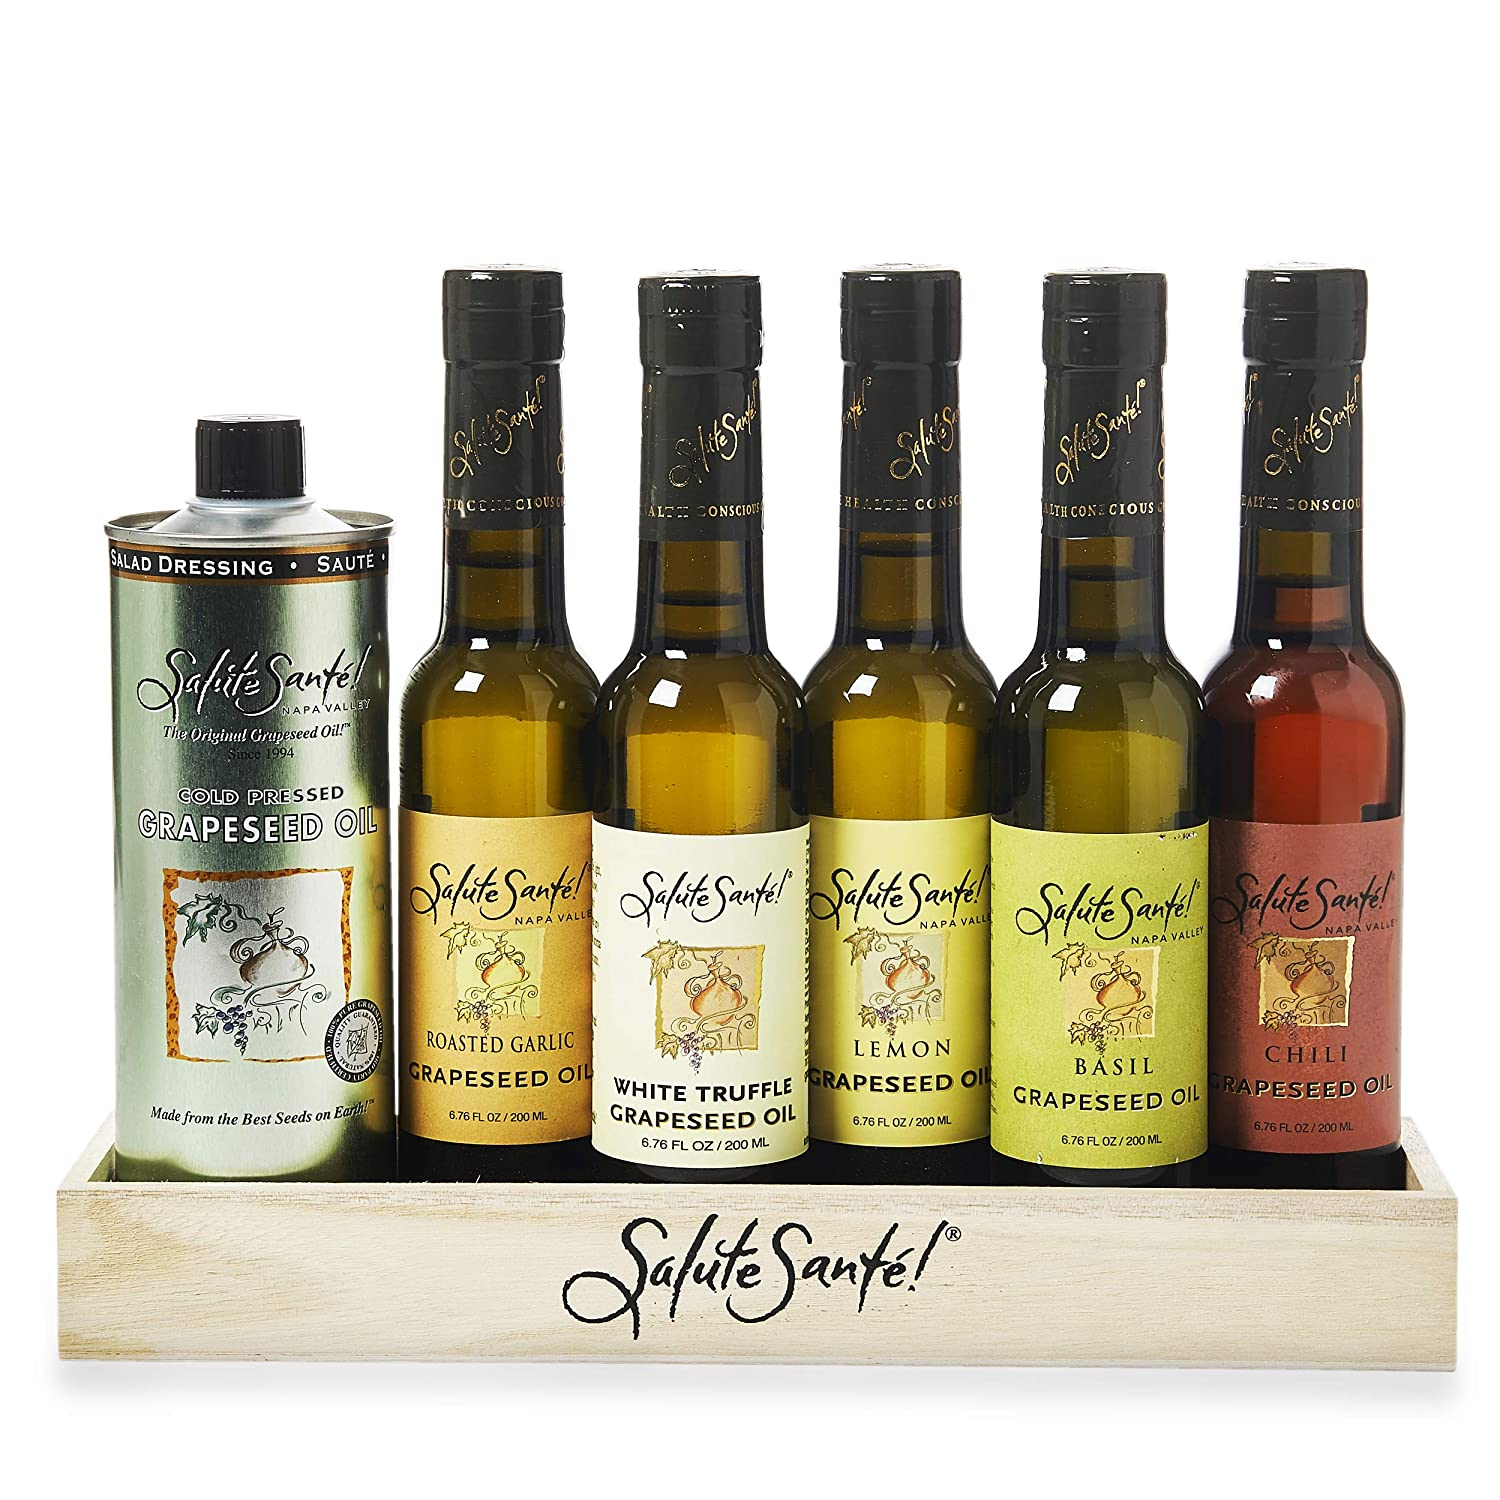 Infused Liquid Spice Grapeseed Oil Gift Set for cooking and